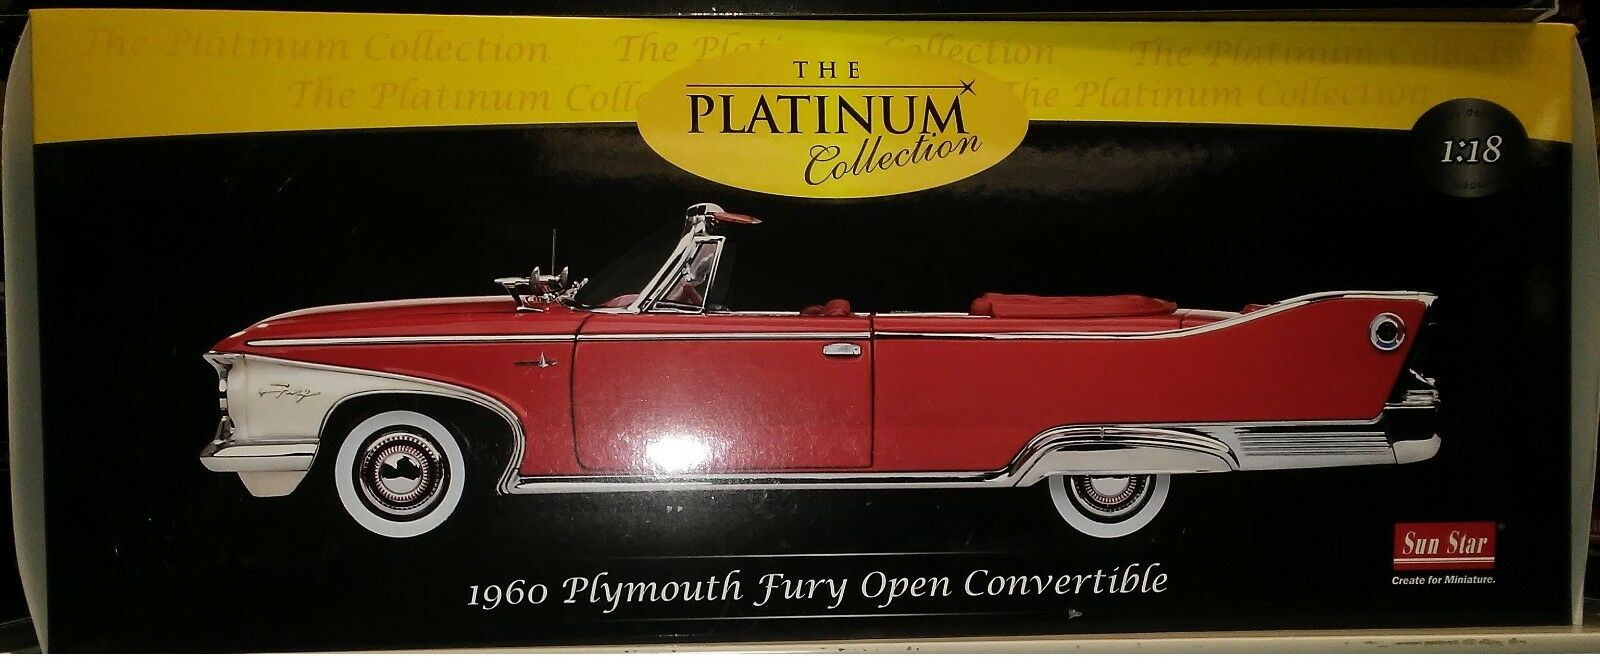 1960 Plymouth Fury Convertible Diecast 10 Inch Sunstar 118 Platinum 1 Of 1only 3 Available